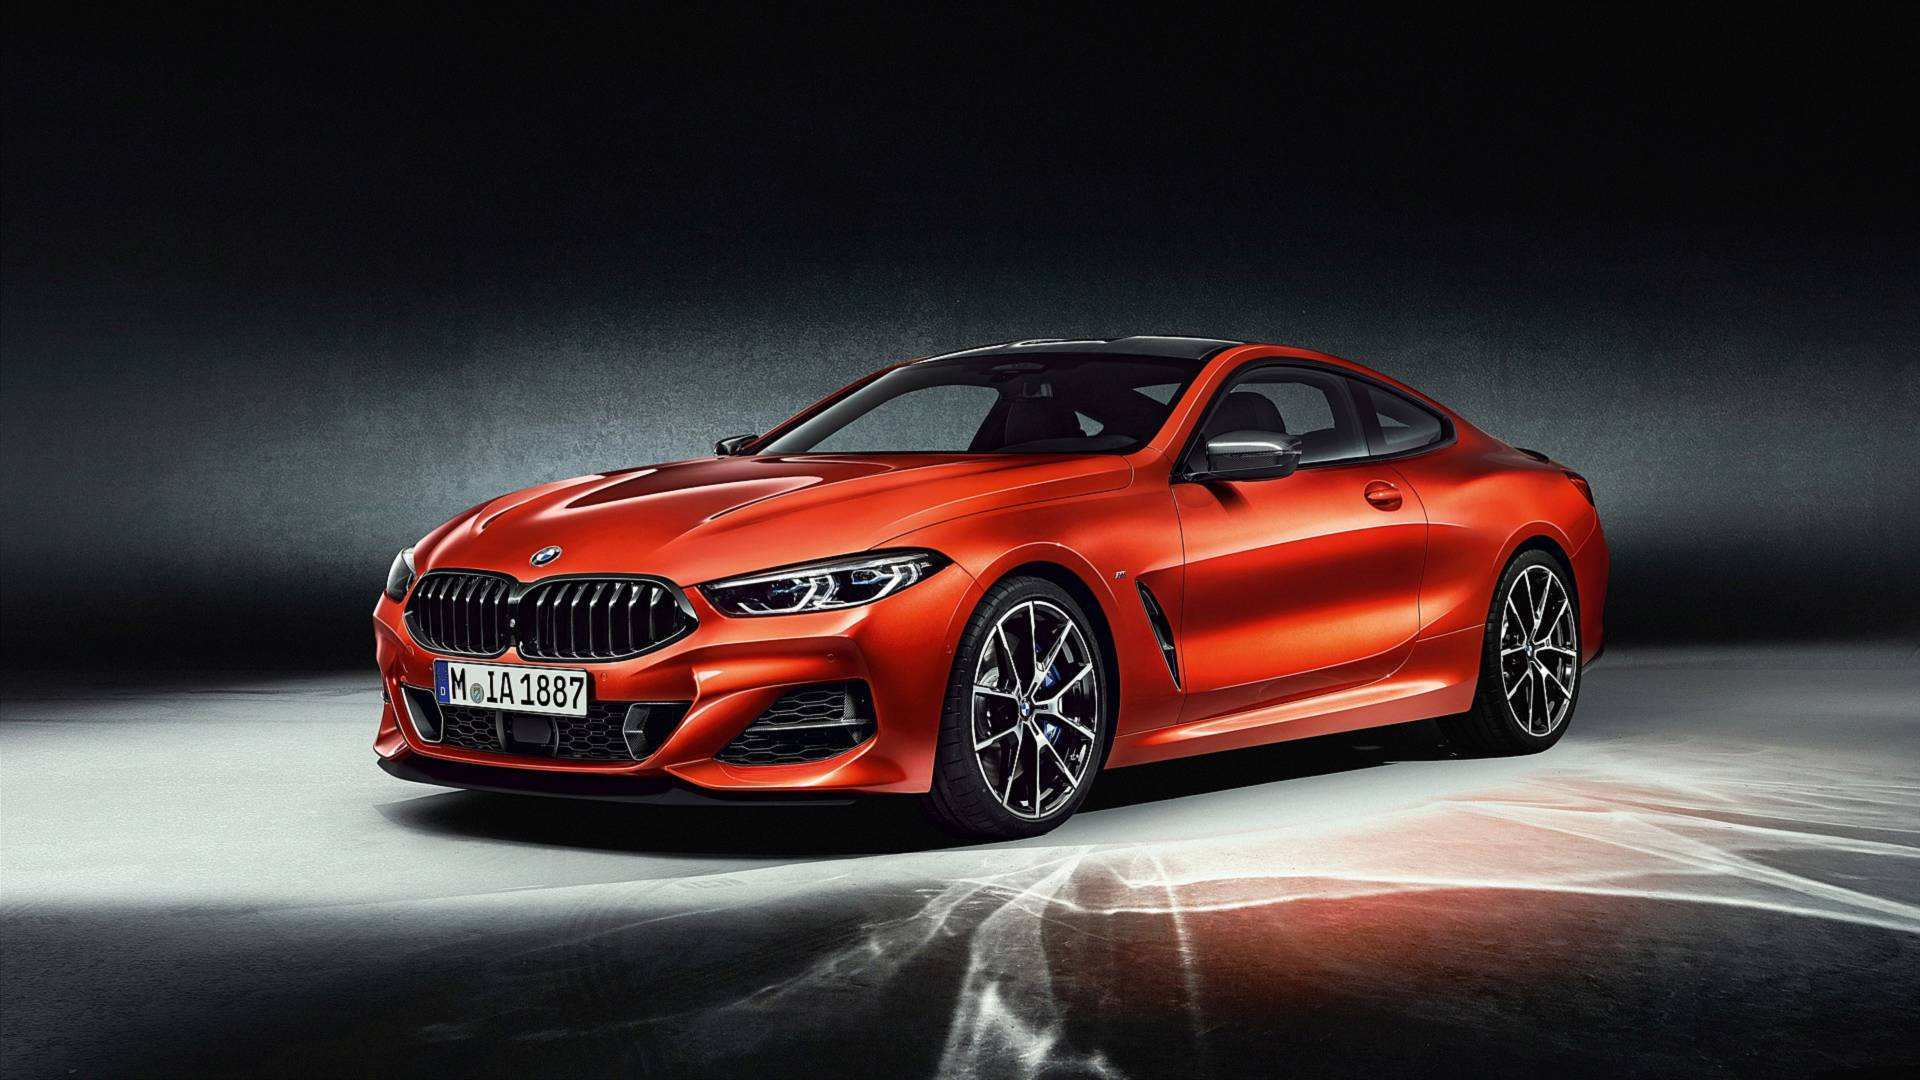 80 New 2020 Bmw 8 Series Price Redesign and Concept for 2020 Bmw 8 Series Price